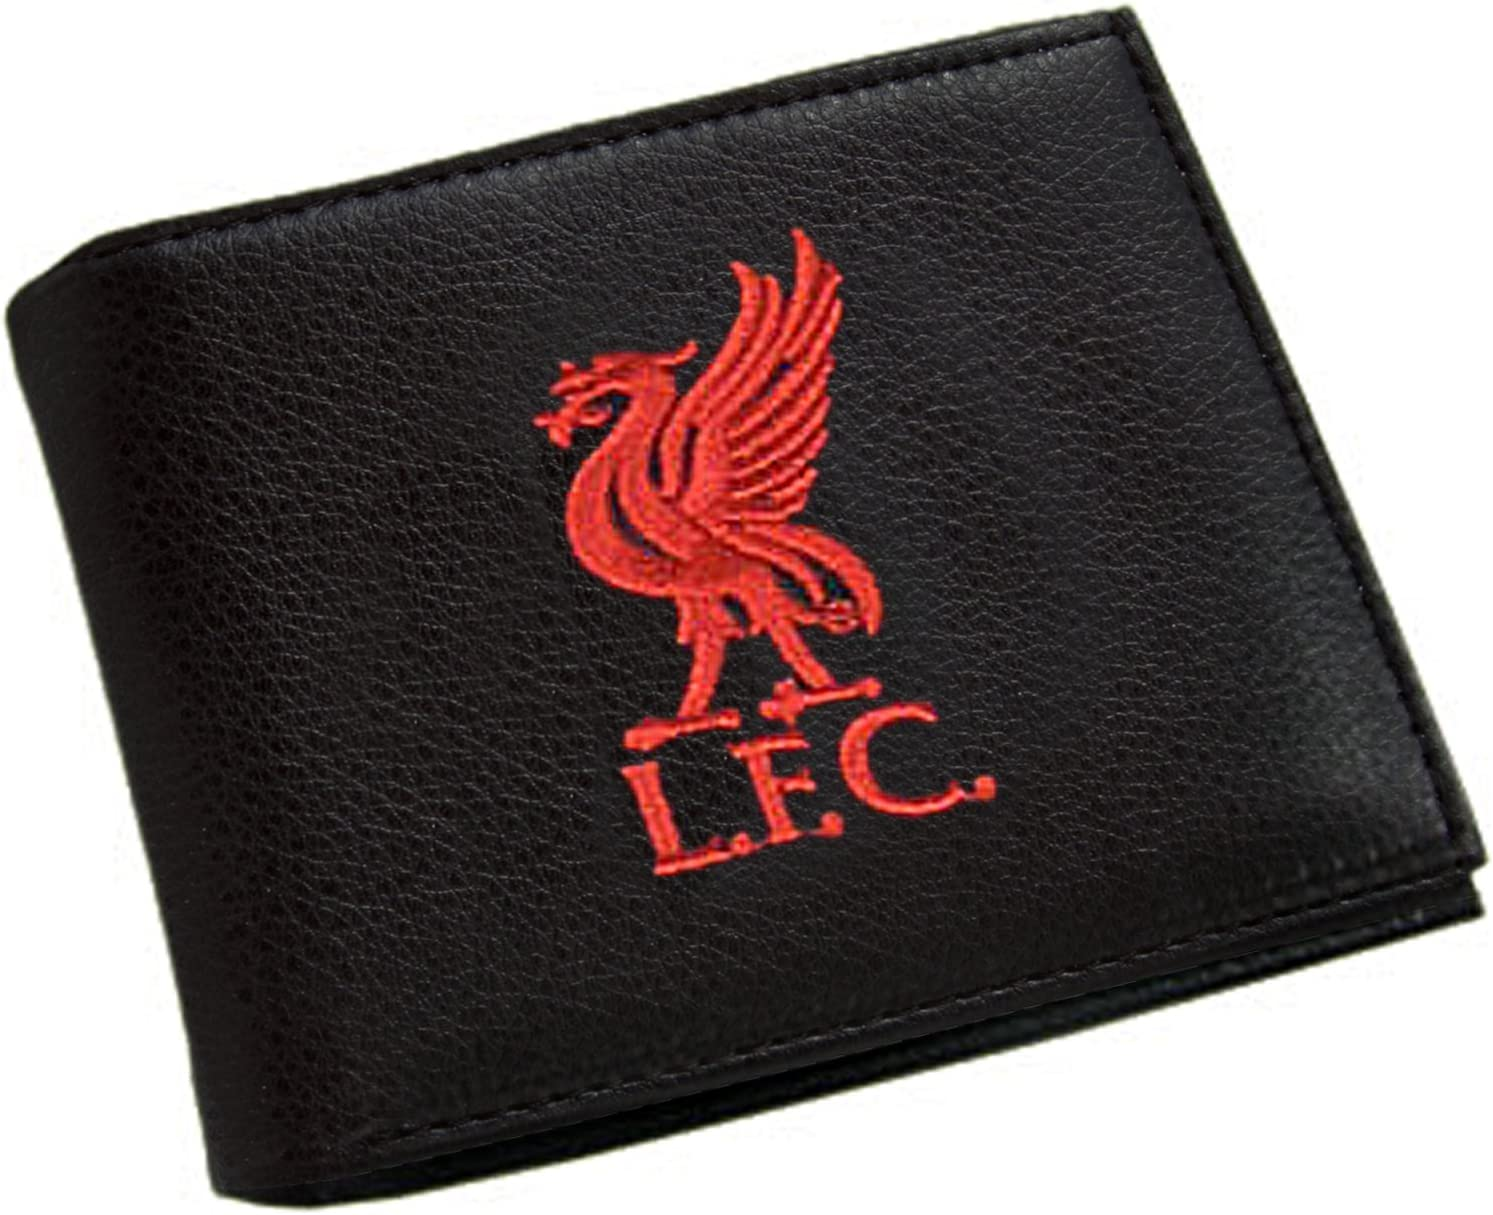 OFFICIAL CHELSEA F.C 2 Tone {Debossed} Crest PU Leather Wallet Ideal Gifts